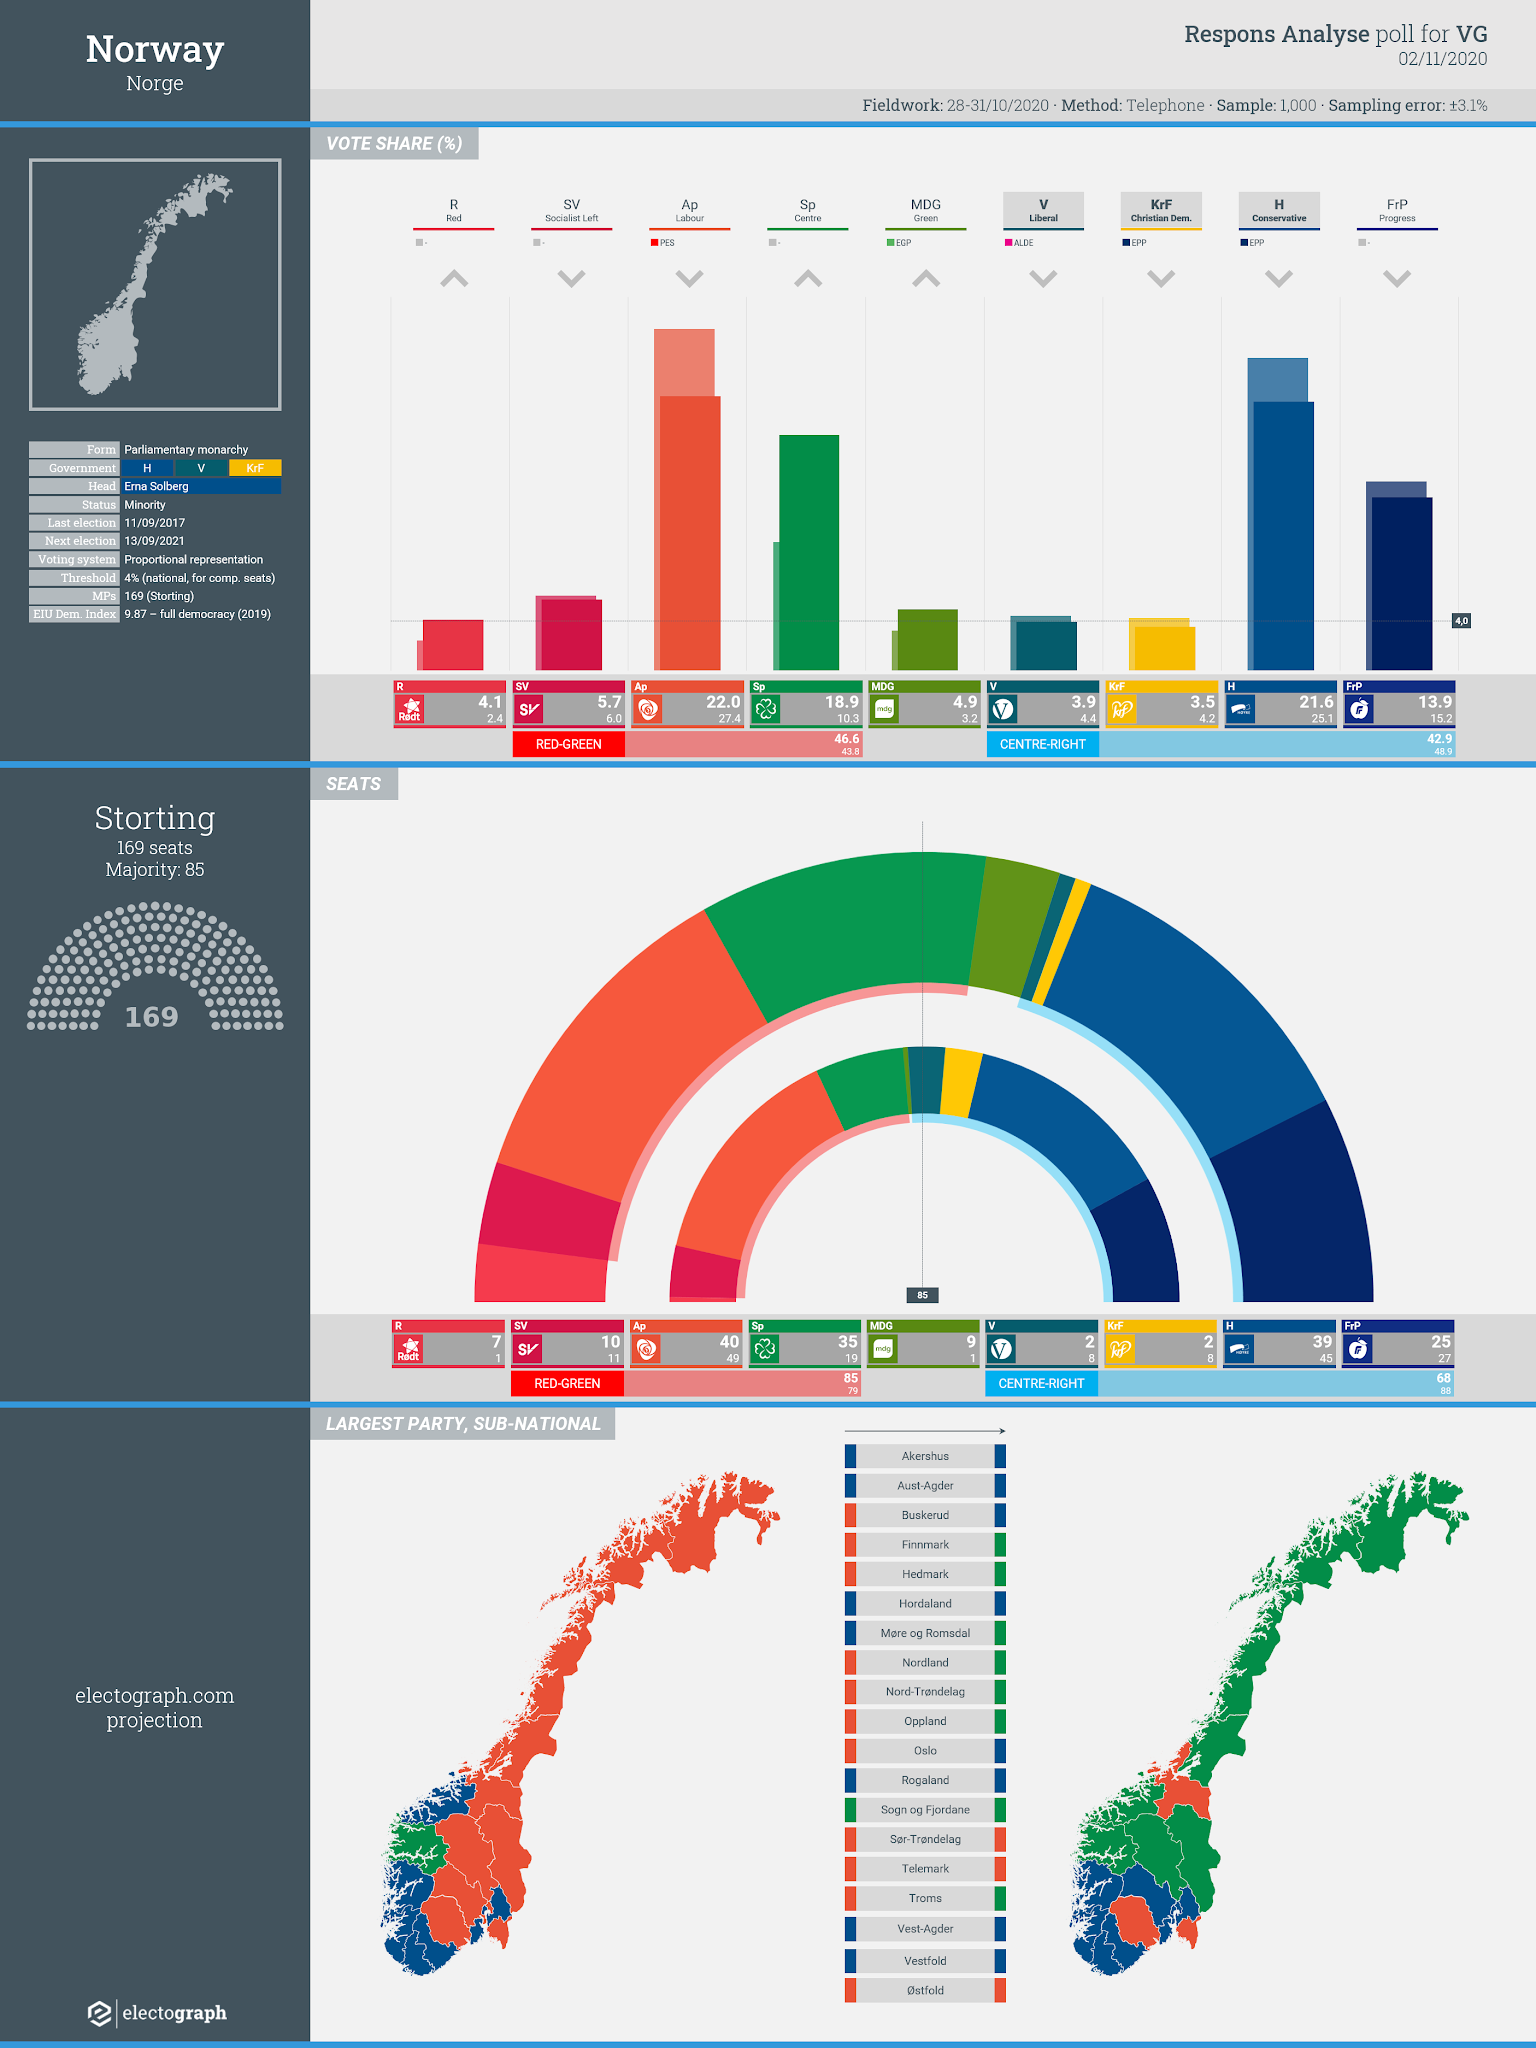 NORWAY: Respons Analyse poll chart for VG, 2 November 2020